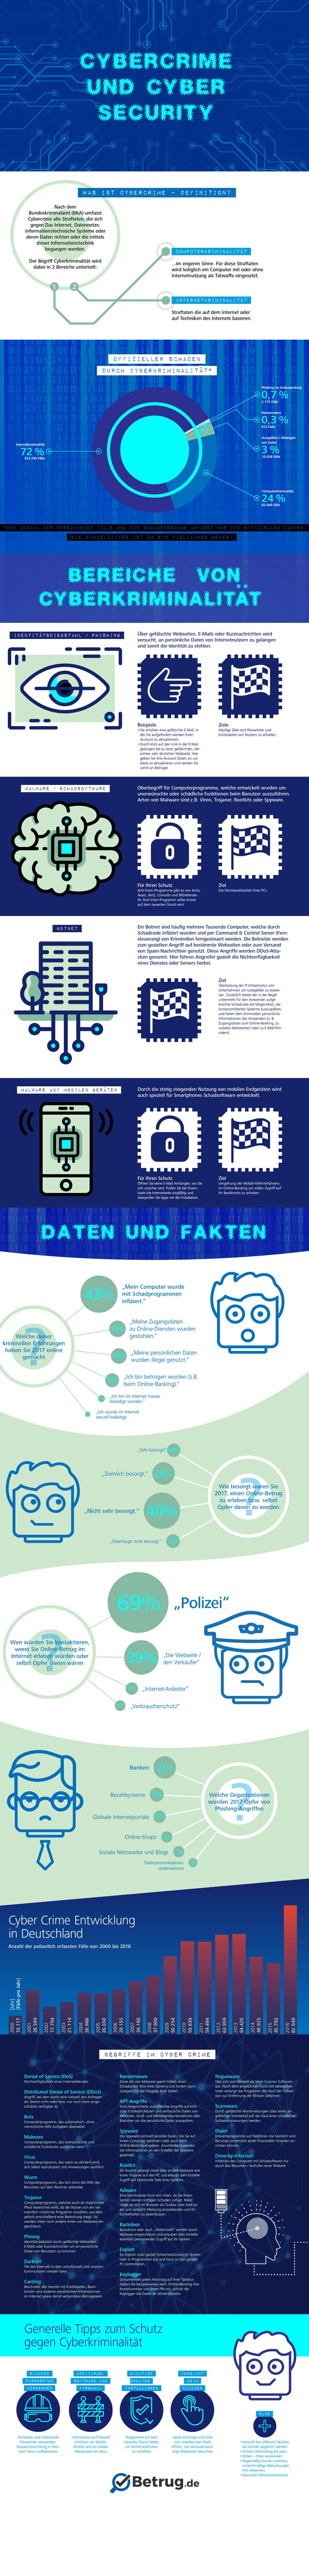 Cybercrime_Cyber-Security_Infografik